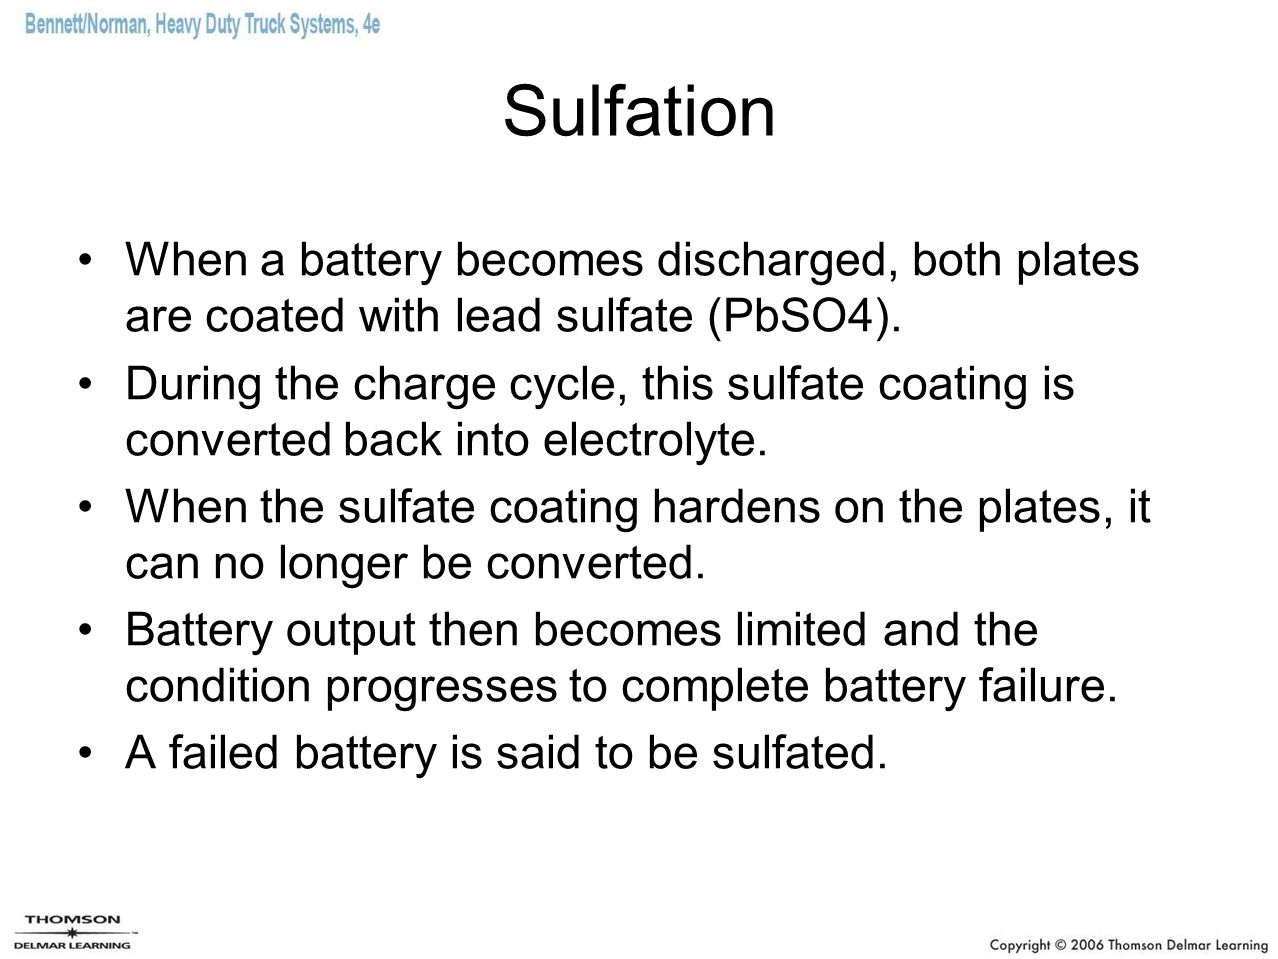 Sulfation When a battery becomes discharged, both plates are coated with lead sulfate (PbSO4).